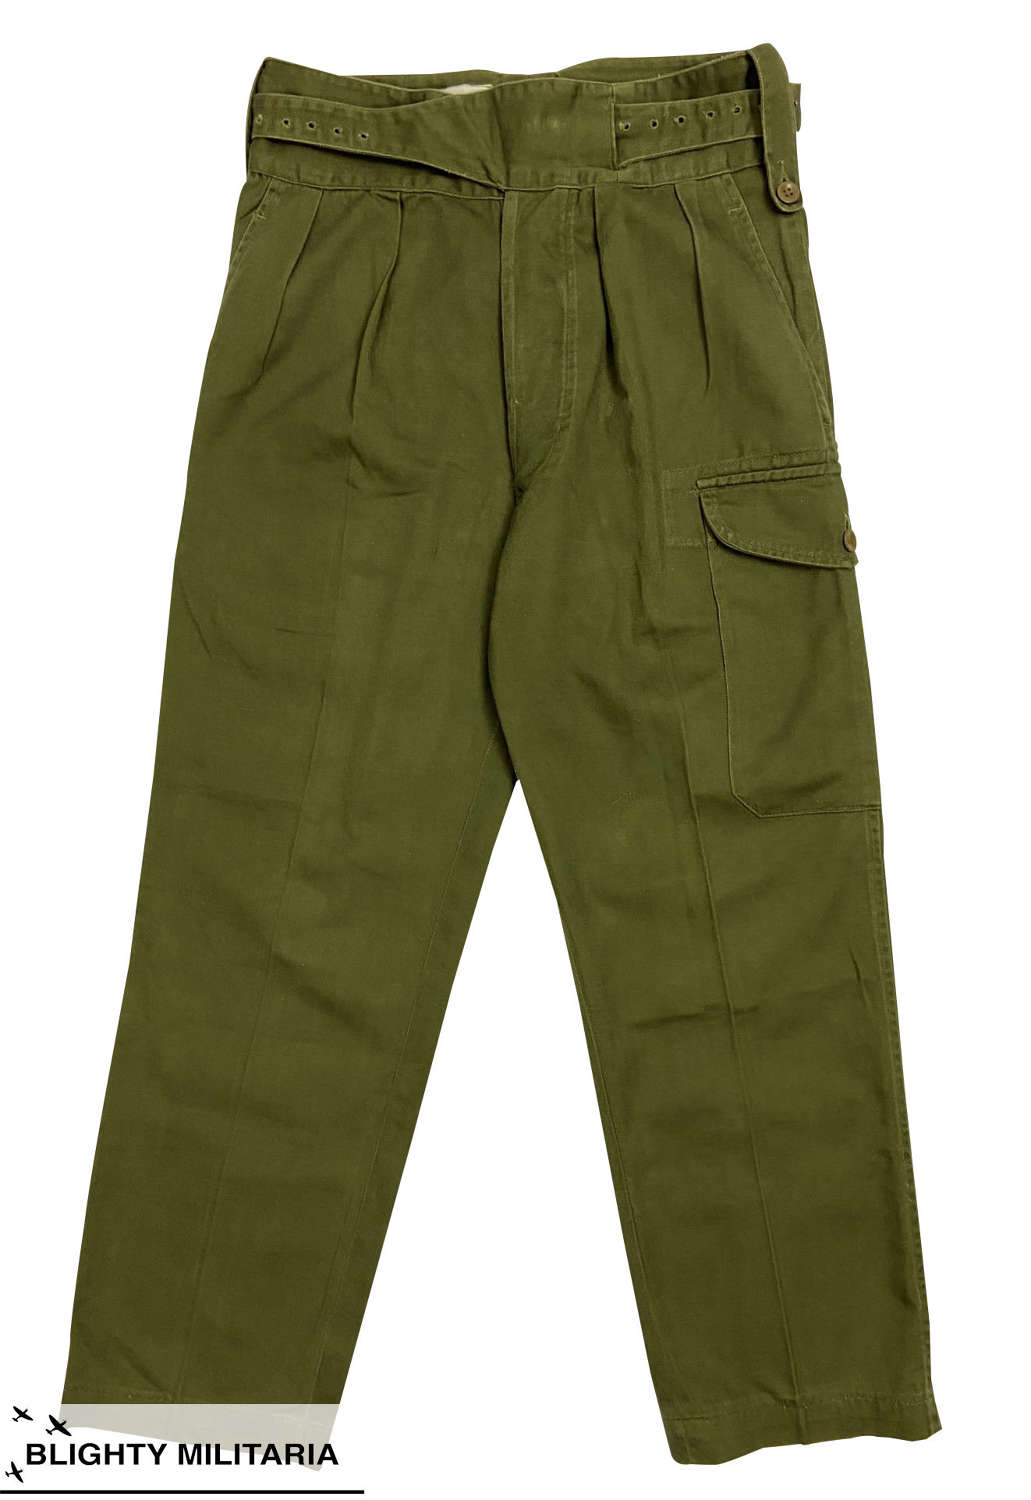 Original 1971 Dated 1960 Pattern Drill Green Trousers